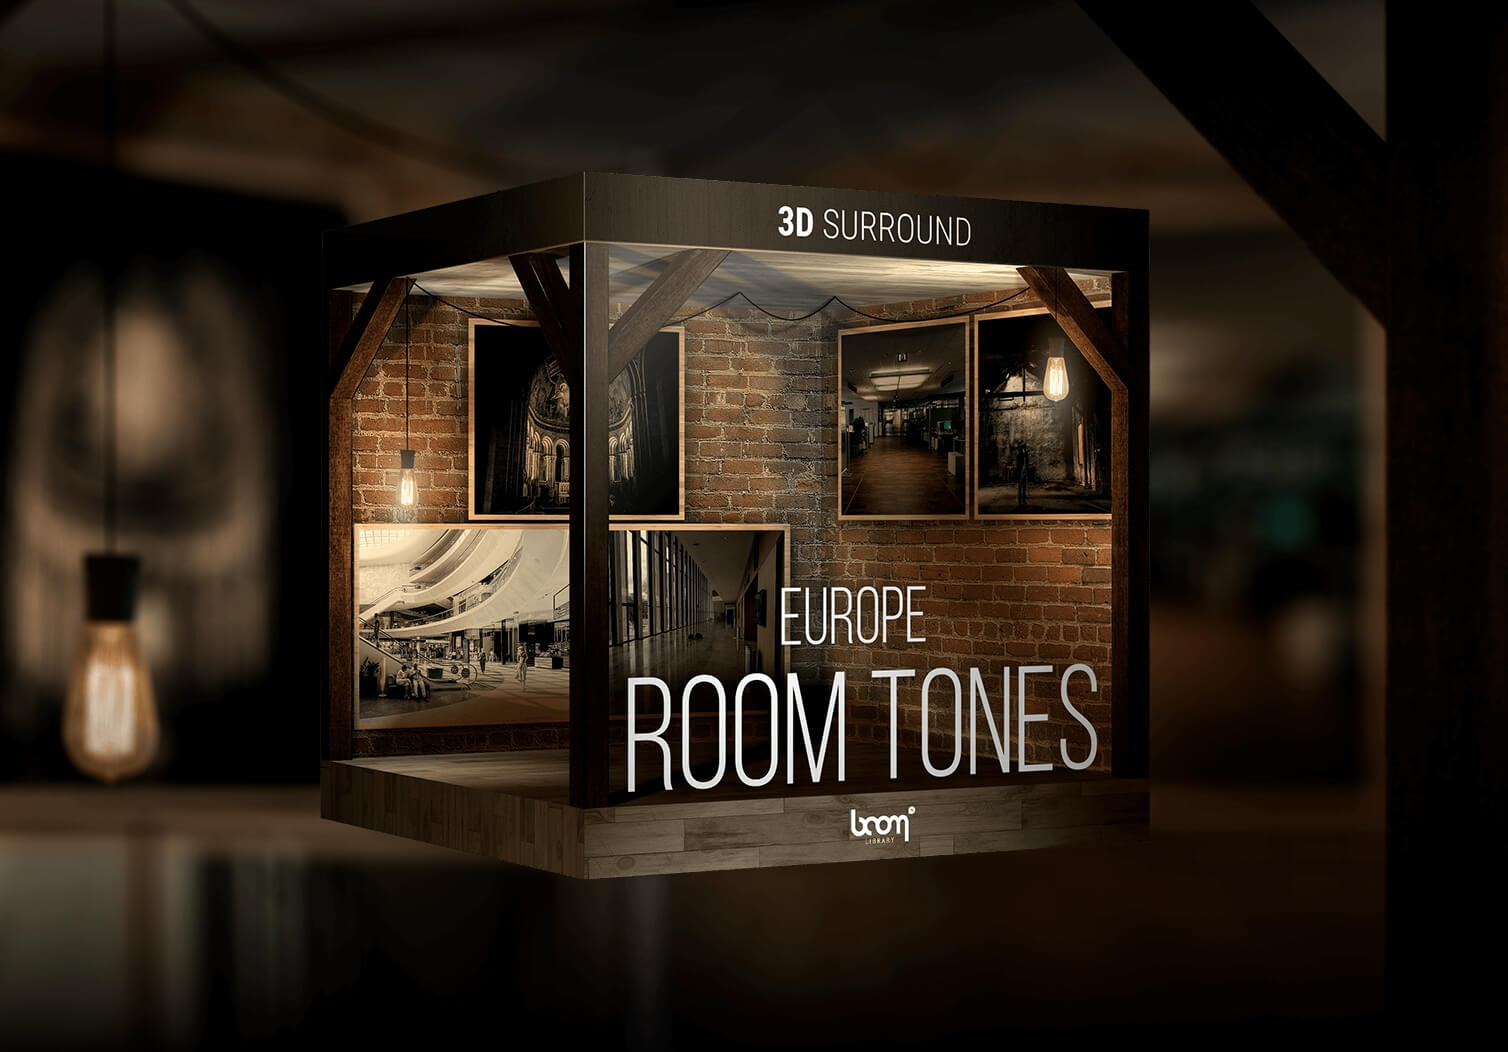 boom library releases room tones europe 3d surround series sound library. Black Bedroom Furniture Sets. Home Design Ideas